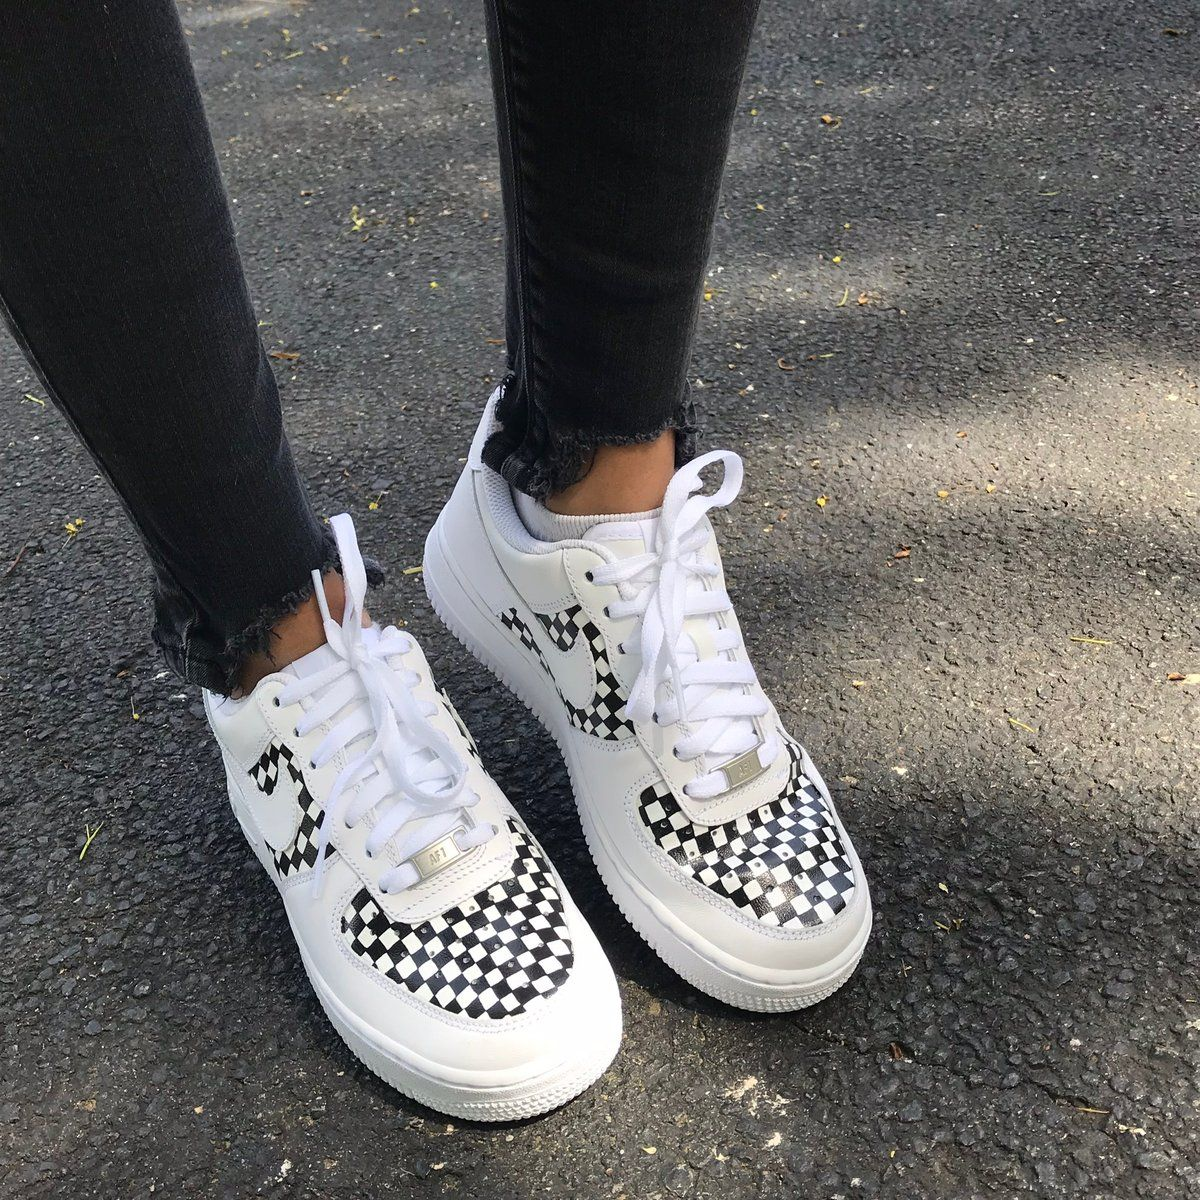 release date: 34327 e41ca Sneakers by Nike. Designs painted by DJ ZO Designs. Hand-painted black and  white checker pattern on middle and toe of Nike Air Force 1s.